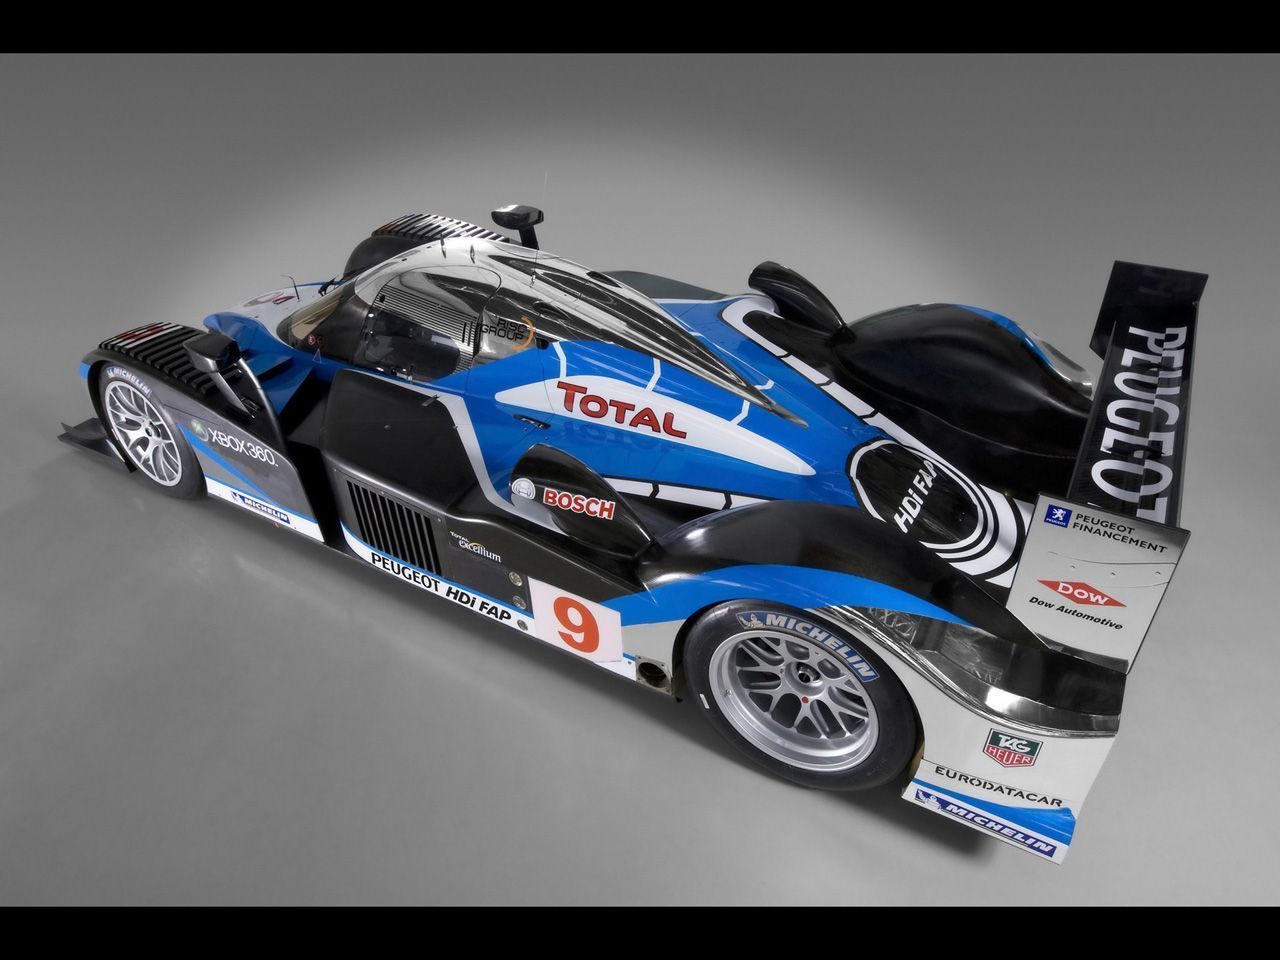 2009Peugeot908HDiFAPLeMansWinnerStudioRe 1 Image Result For French Press